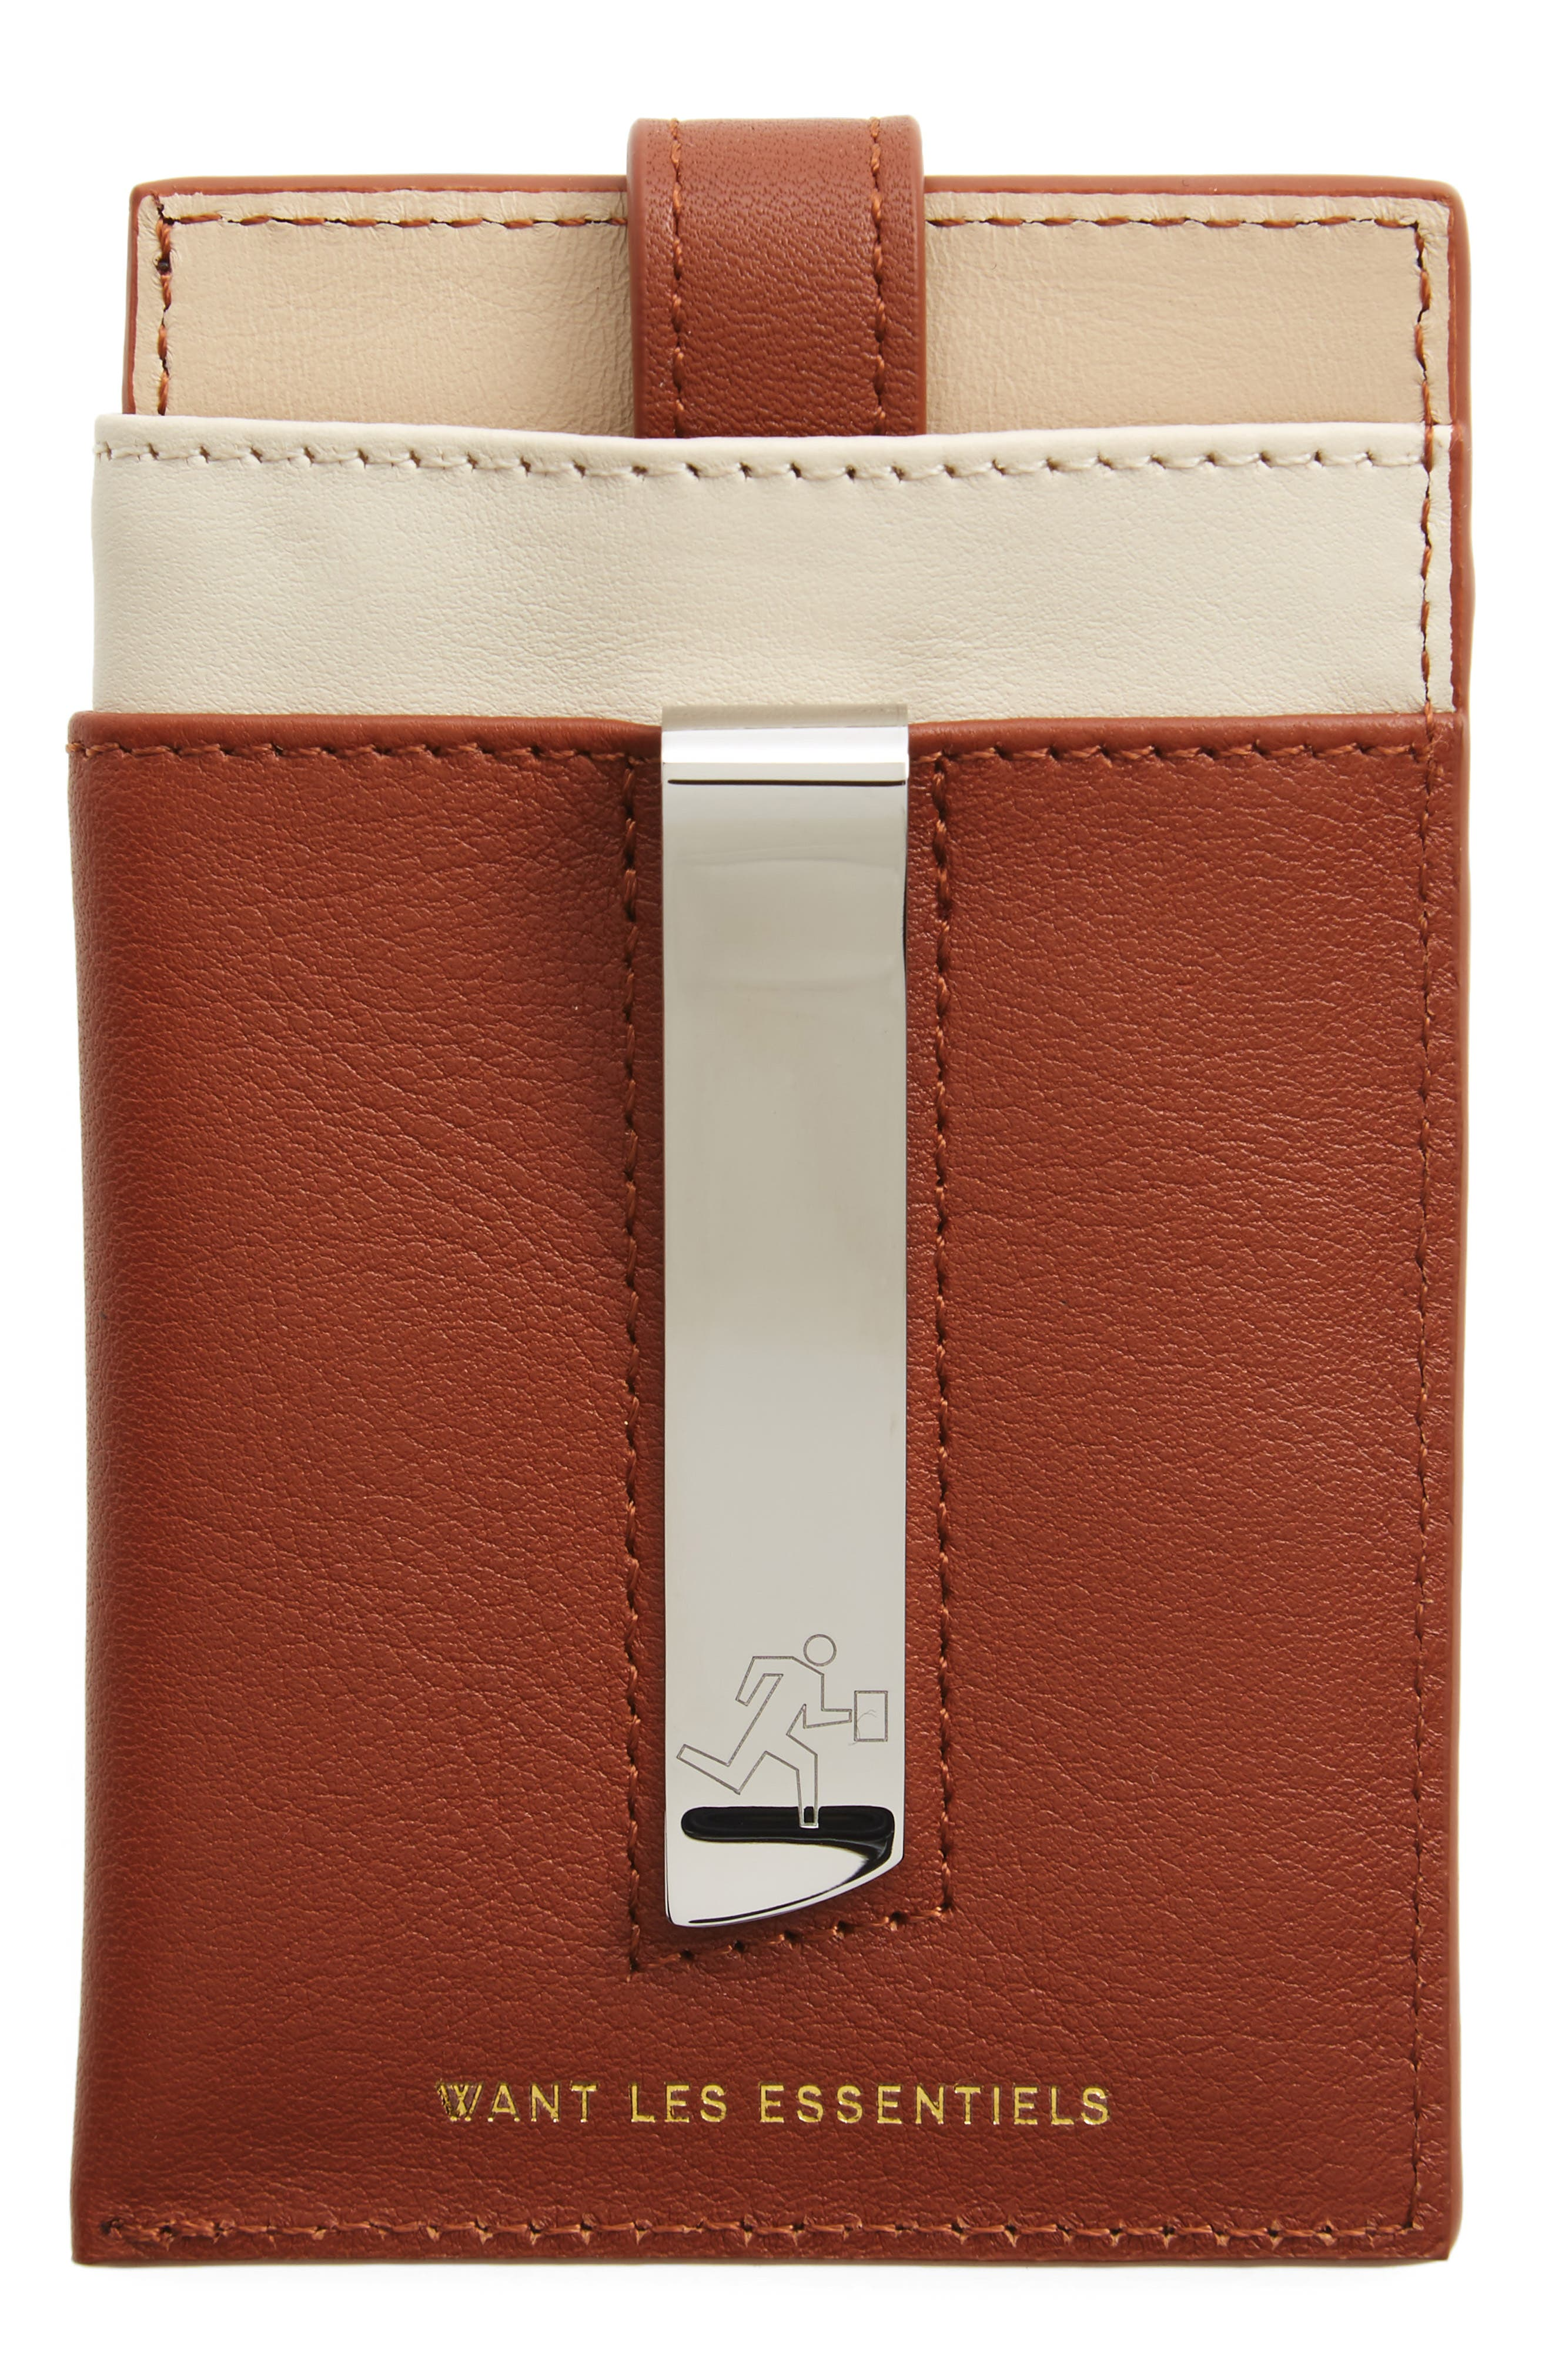 Main Image - WANT LES ESSENTIELS 'Kennedy' Leather Money Clip Card Case